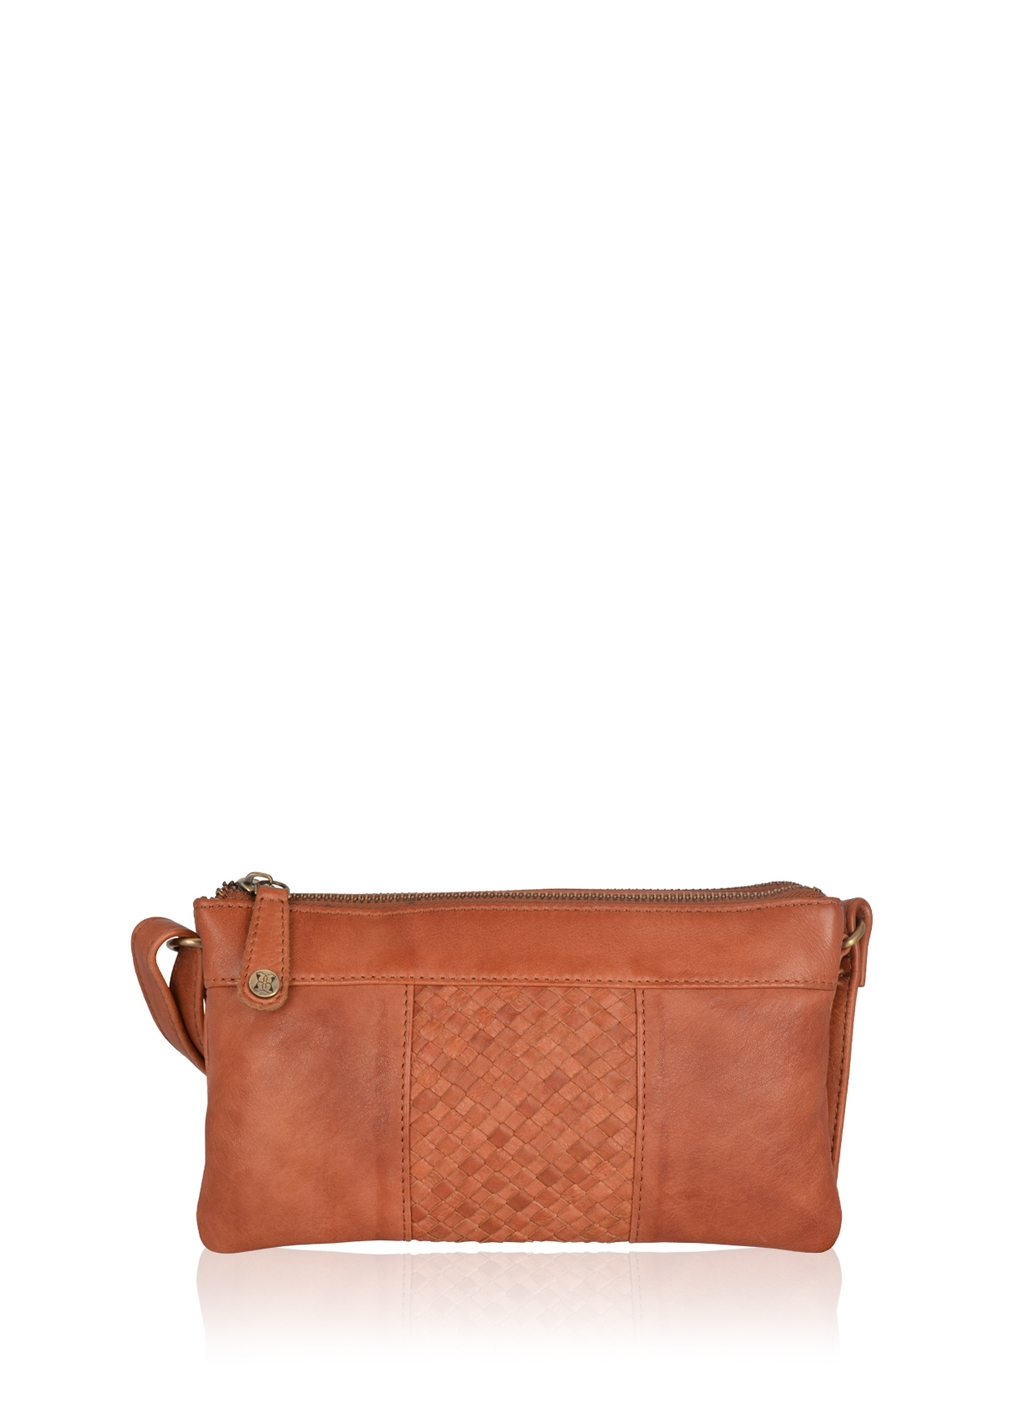 Gosforth Leather Cross Body Bag in Tan